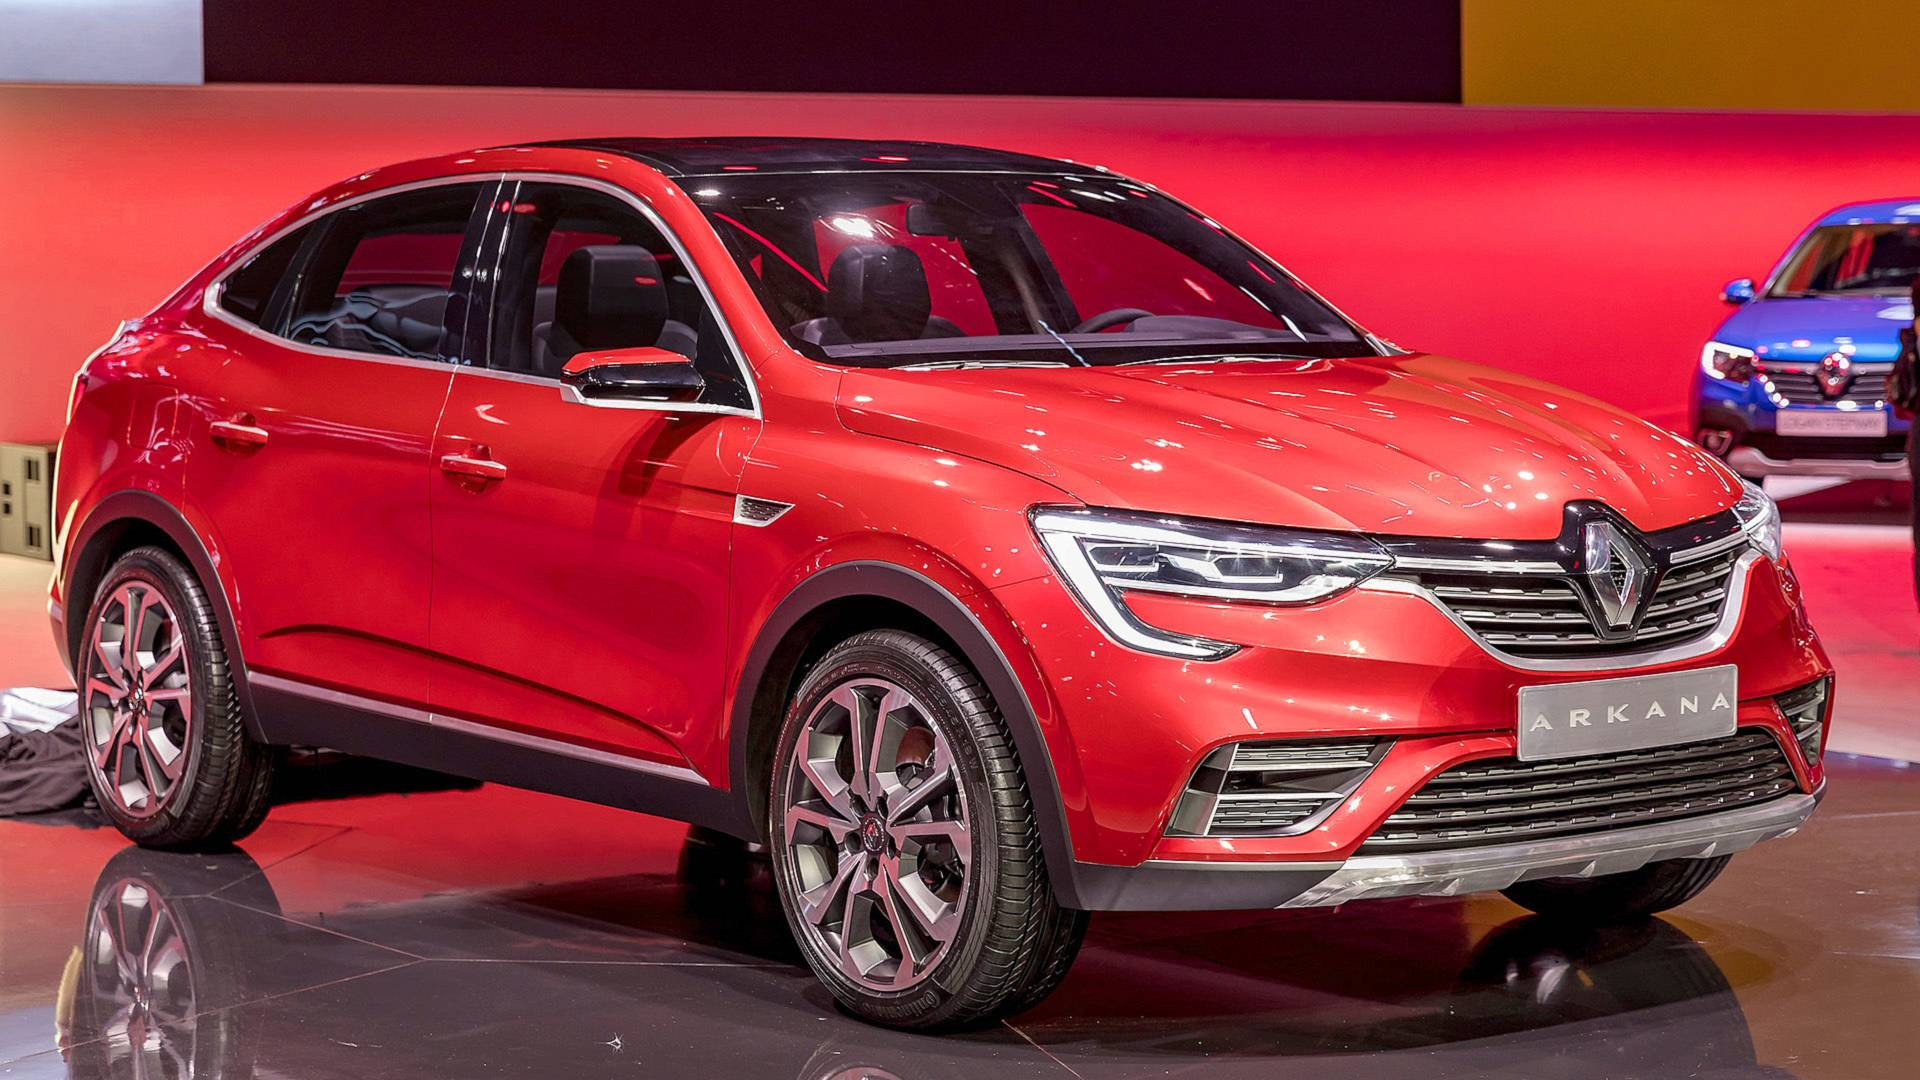 Renault Arkana Revealed at 2018 Moscow International Motor Show 1